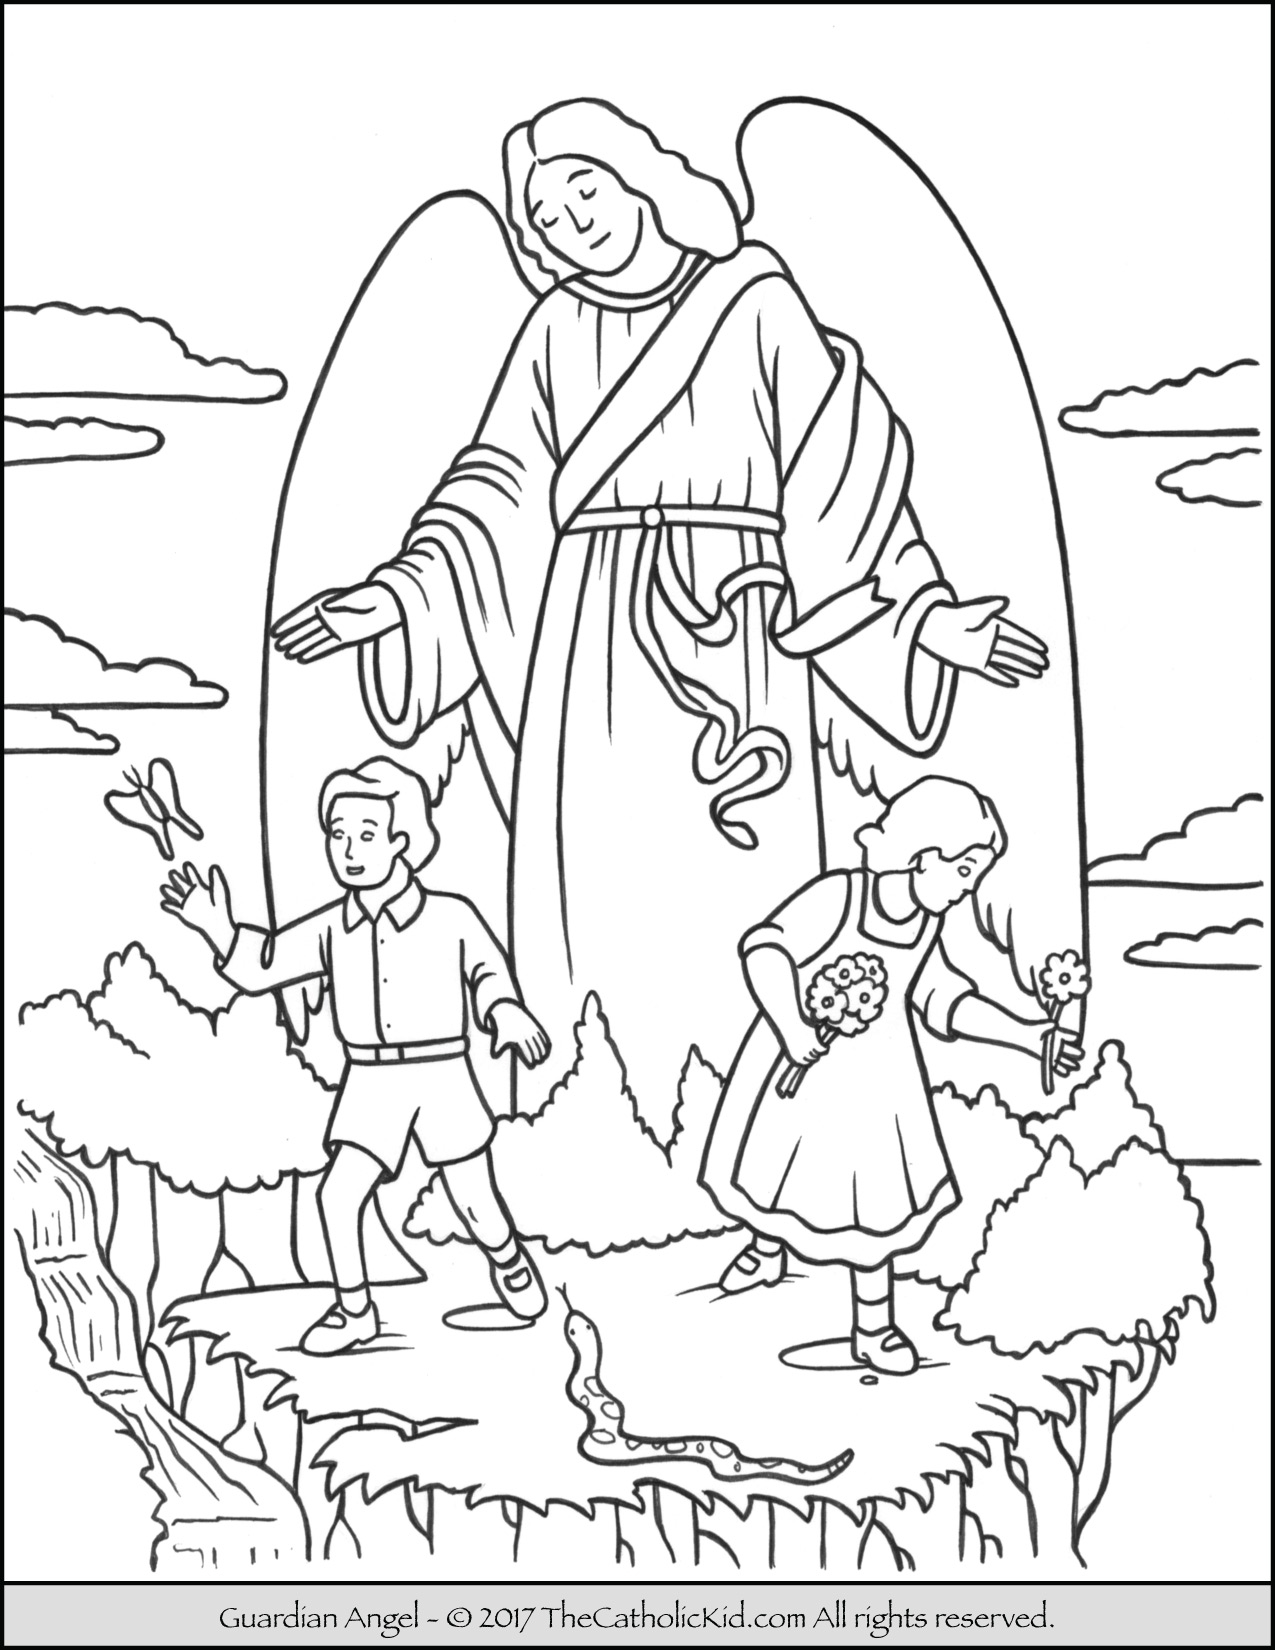 Download Guardian Angel Coloring For Free